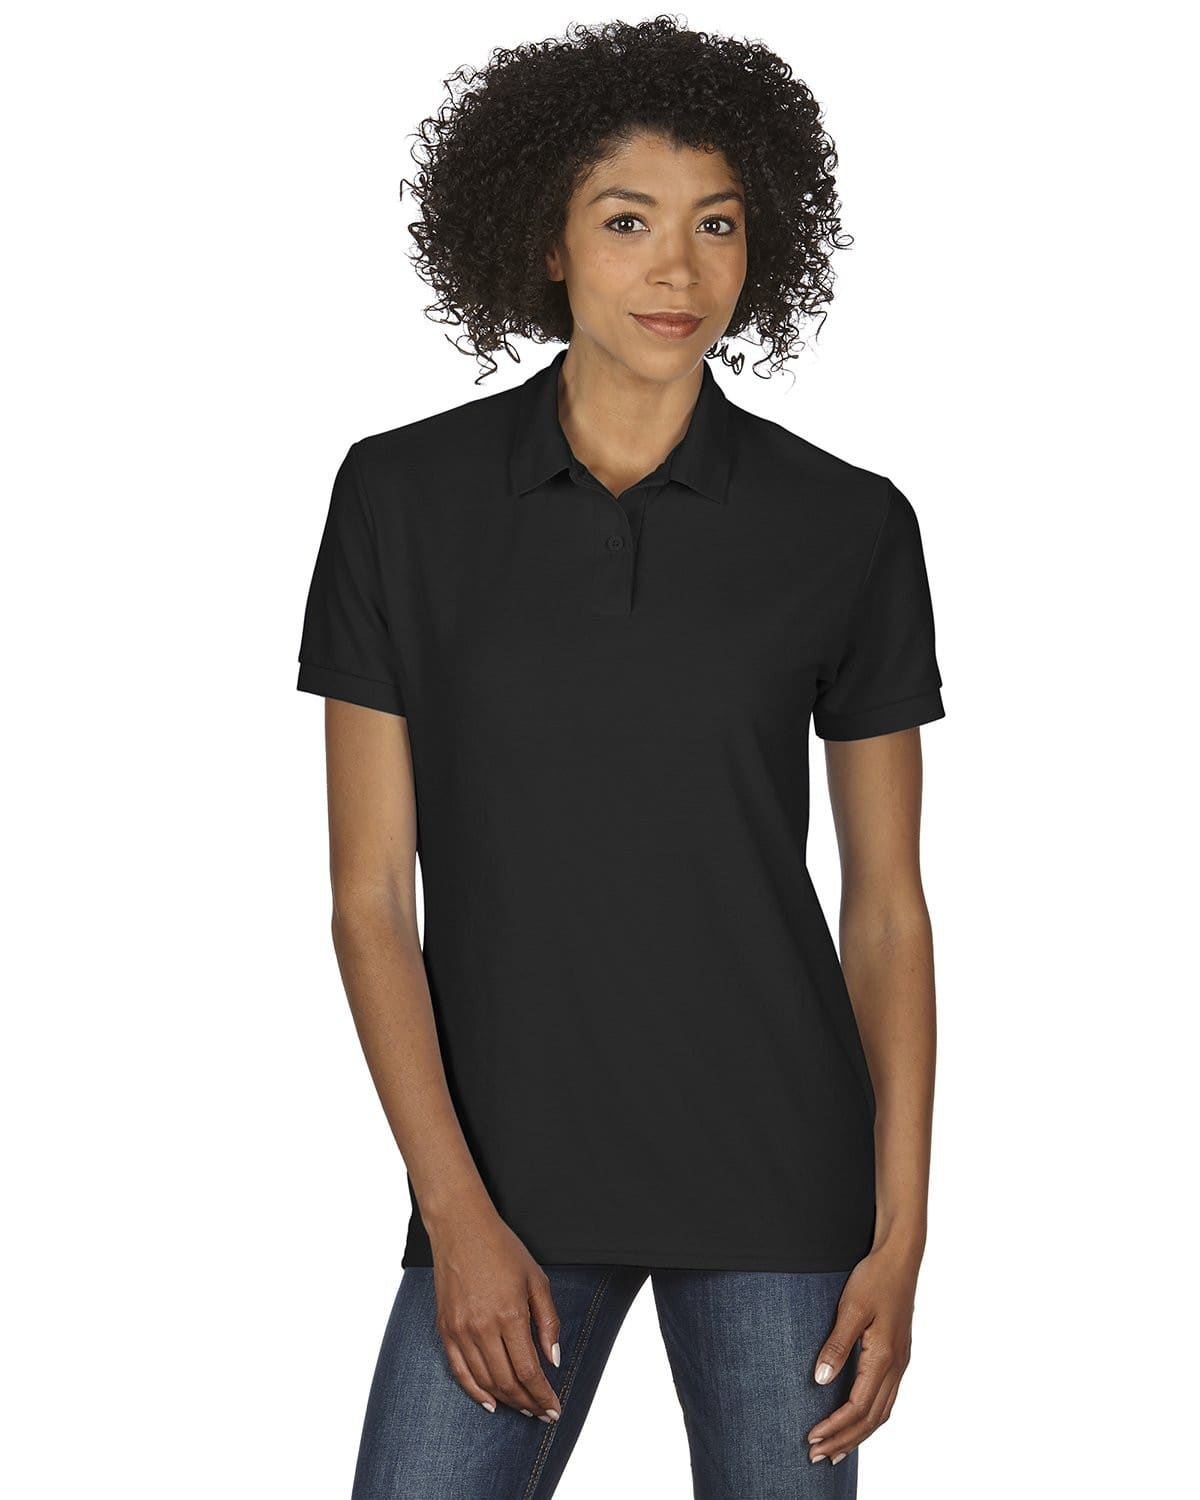 g728l-ladies-6-oz-double-piqu-polo-Small-BLACK-Oasispromos